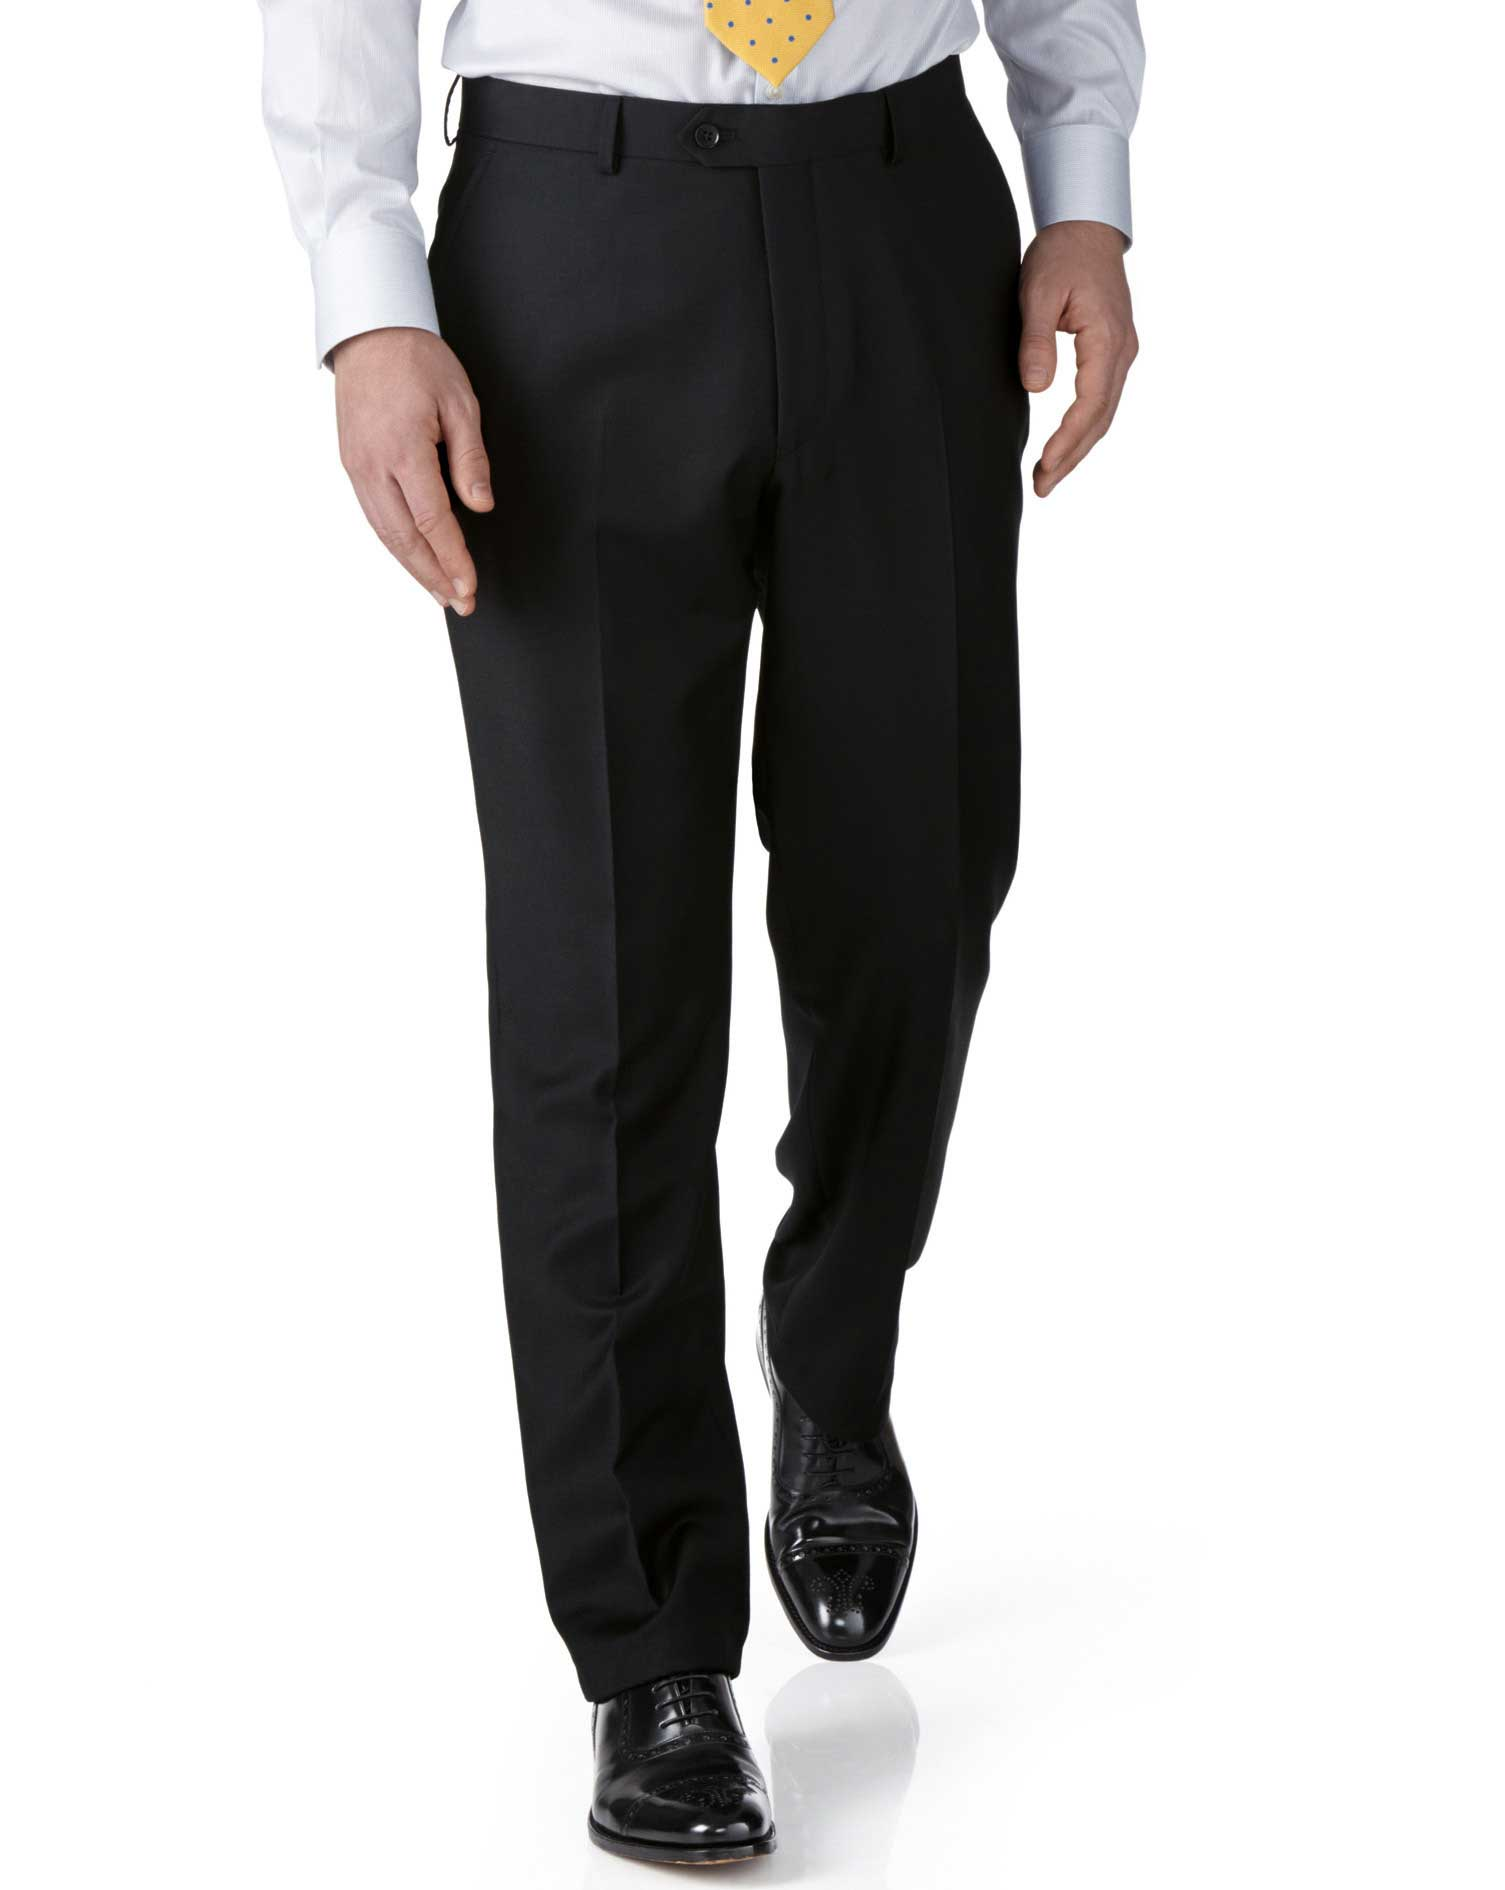 Black Extra Slim Fit Twill Business Suit Trousers Size W34 L30 by Charles Tyrwhitt